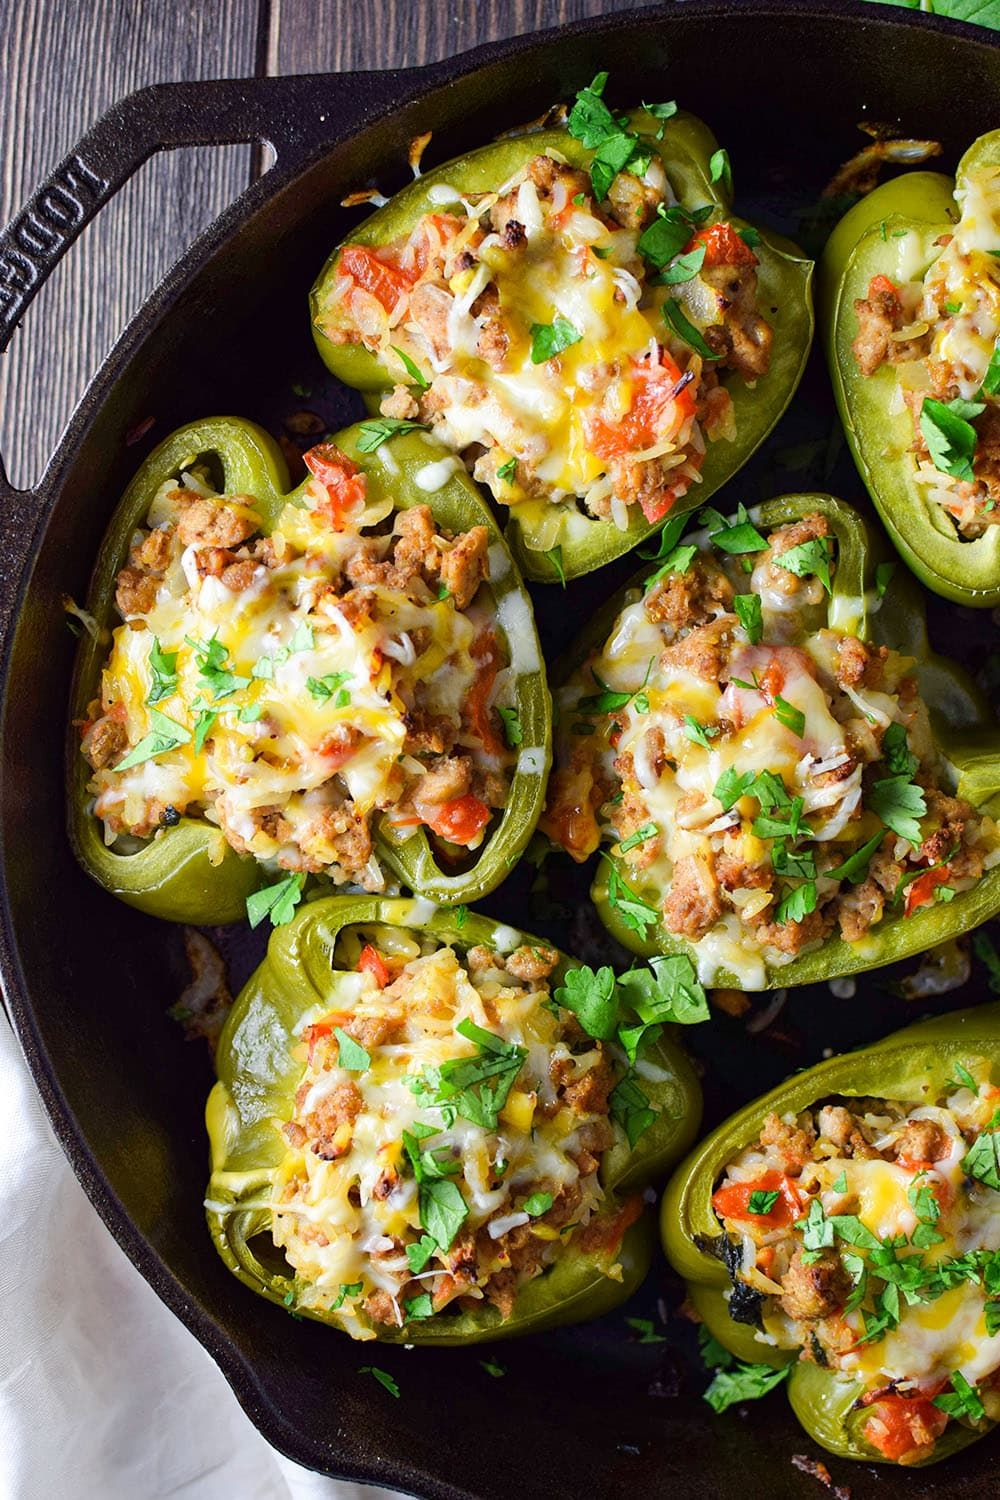 Ground Turkey Stuffed Peppers Recipe Recipe In 2020 Stuffed Peppers Ground Turkey Stuffed Peppers Peppers Recipes